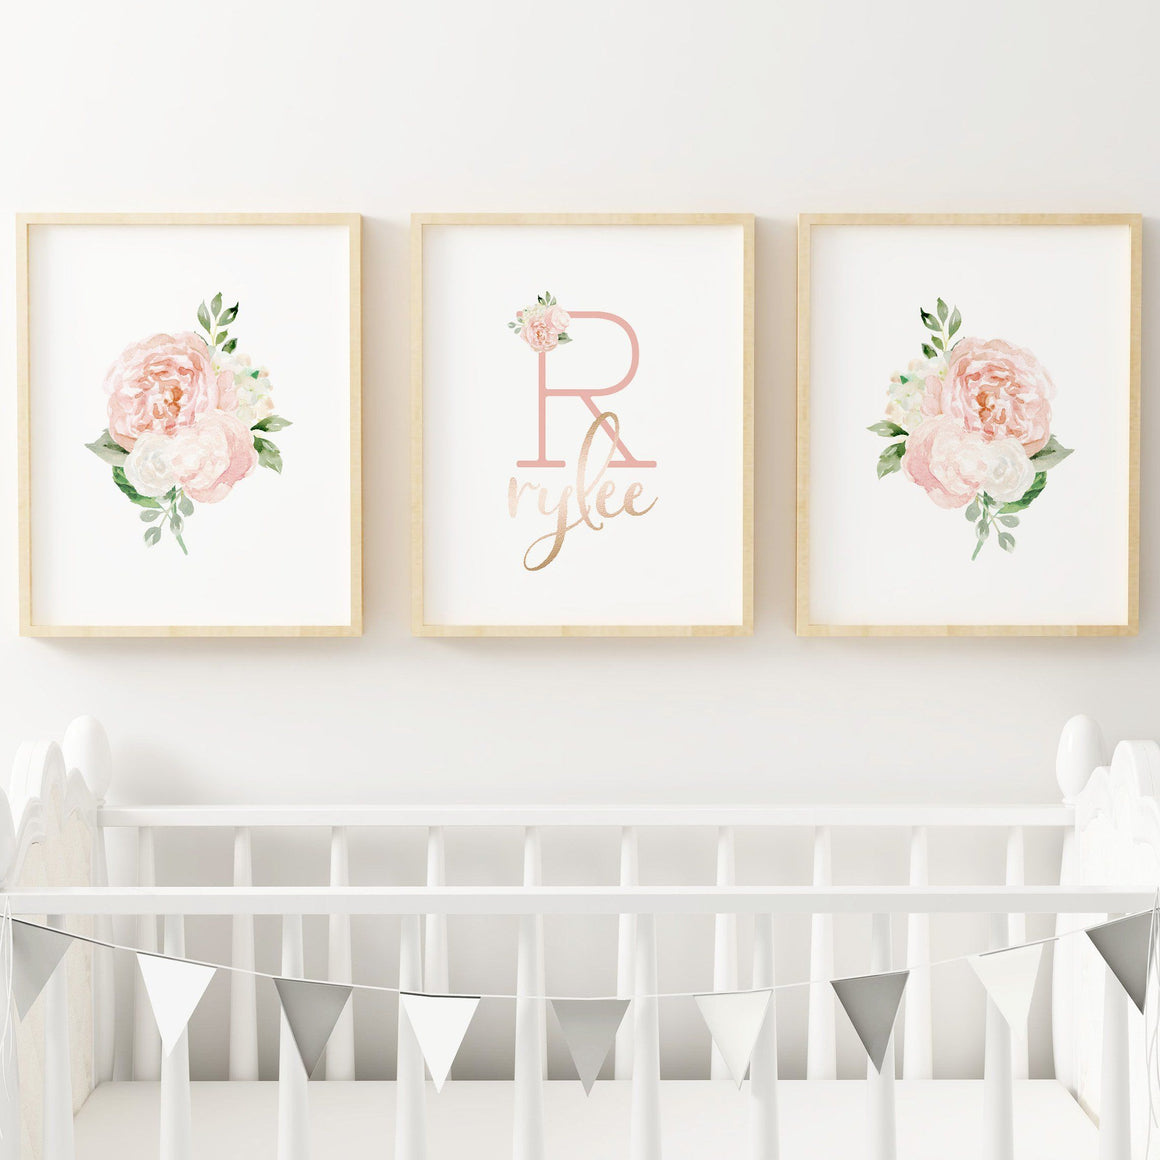 Dark Blush #5 // Set of 3 Prints